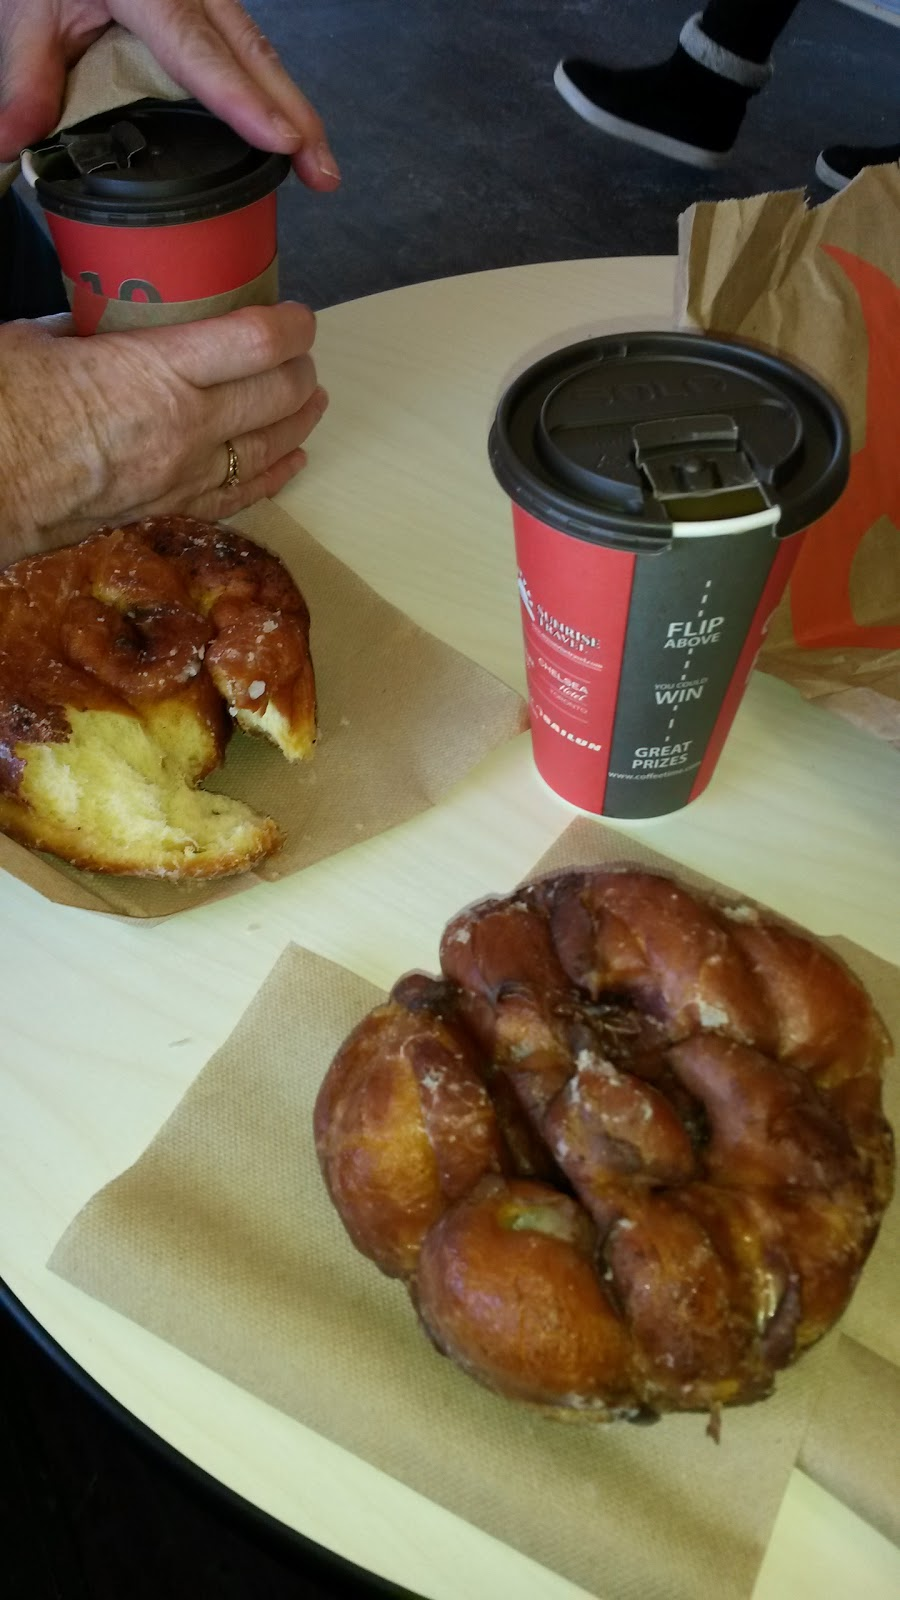 Coffee Time Donuts | bakery | 500 Rossland Rd W, Oshawa, ON L1J 3H2, Canada | 9052402436 OR +1 905-240-2436